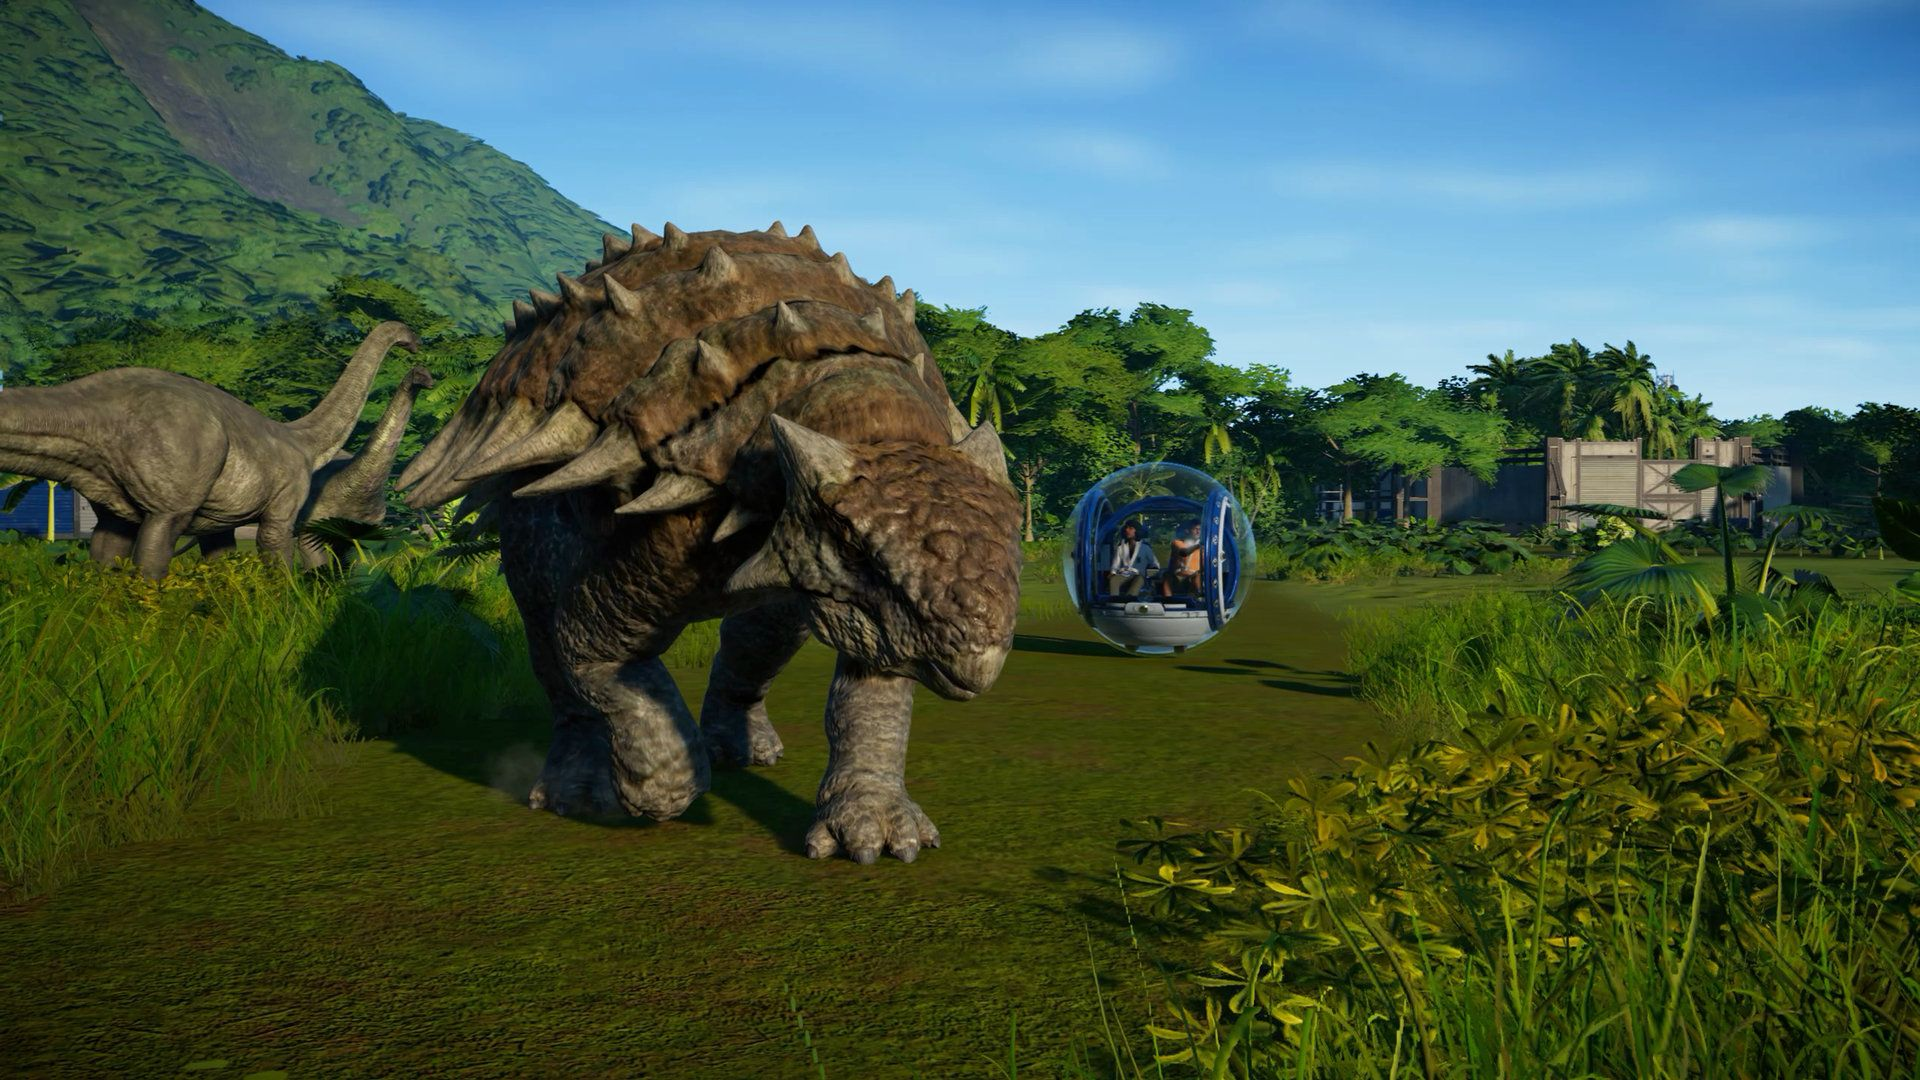 Jurassic World: Jurassic World Video Game Trailer Reveals The SimCity